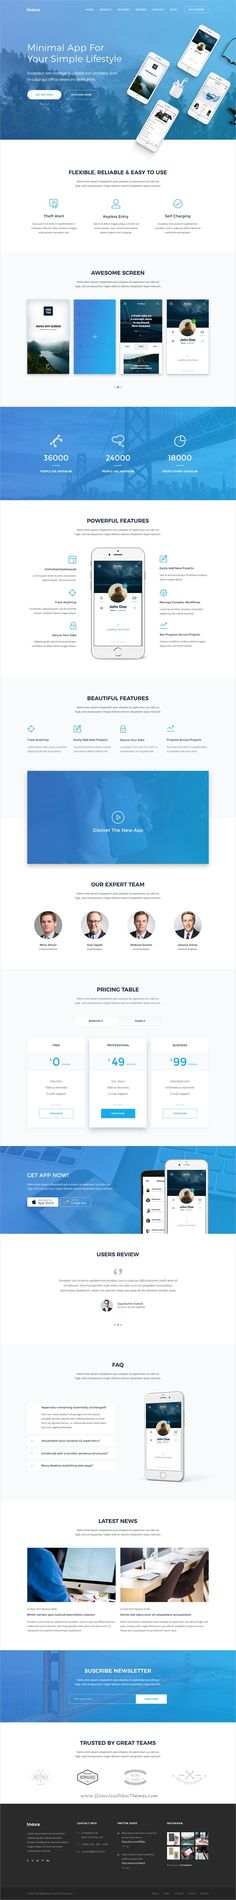 Inova is a creative #PSD landing page template for Product, SaaS, #App, #Startups or marking websites with 22 organized PSD pages download now➩ https://themeforest.net/item/inova-product-saas-app-startup-marketing-landing-page/19486443?ref=Datasata